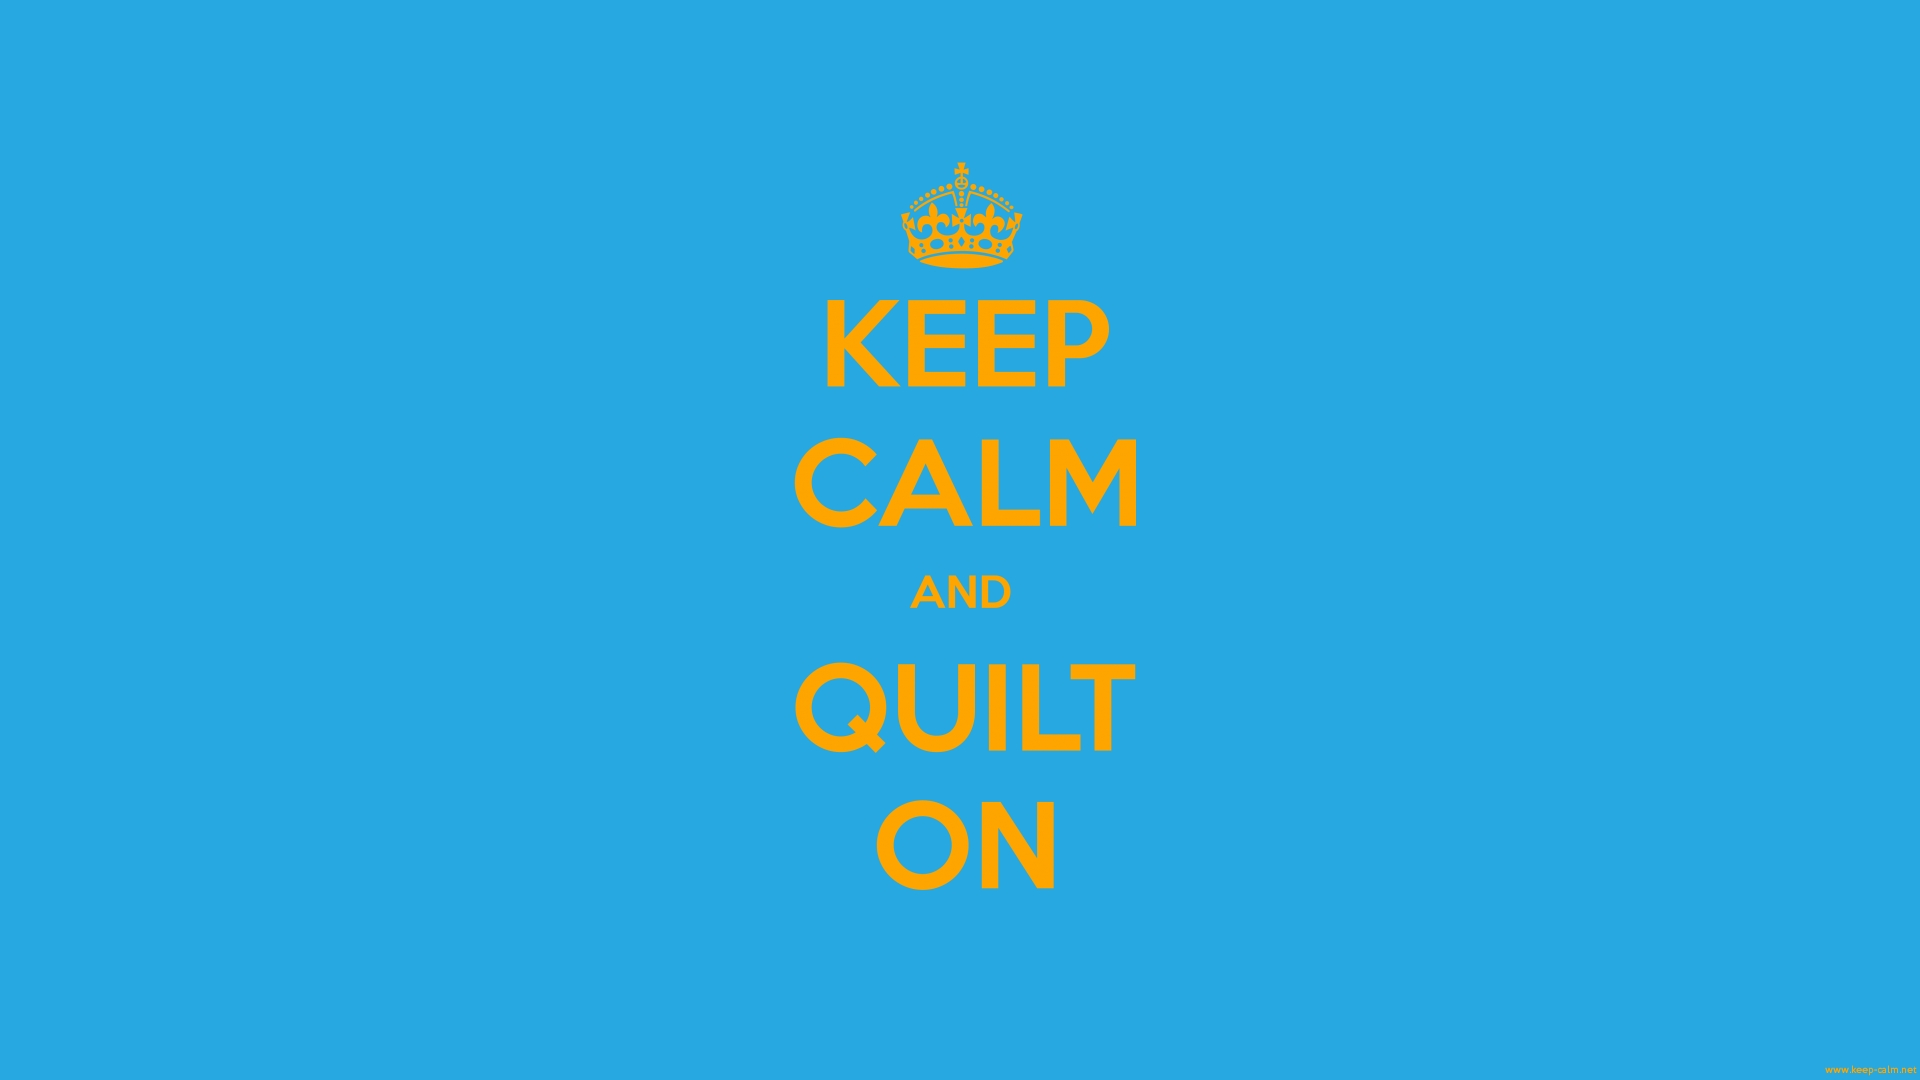 keep-calm-and-quilt-on-1920-1080-orange-blue